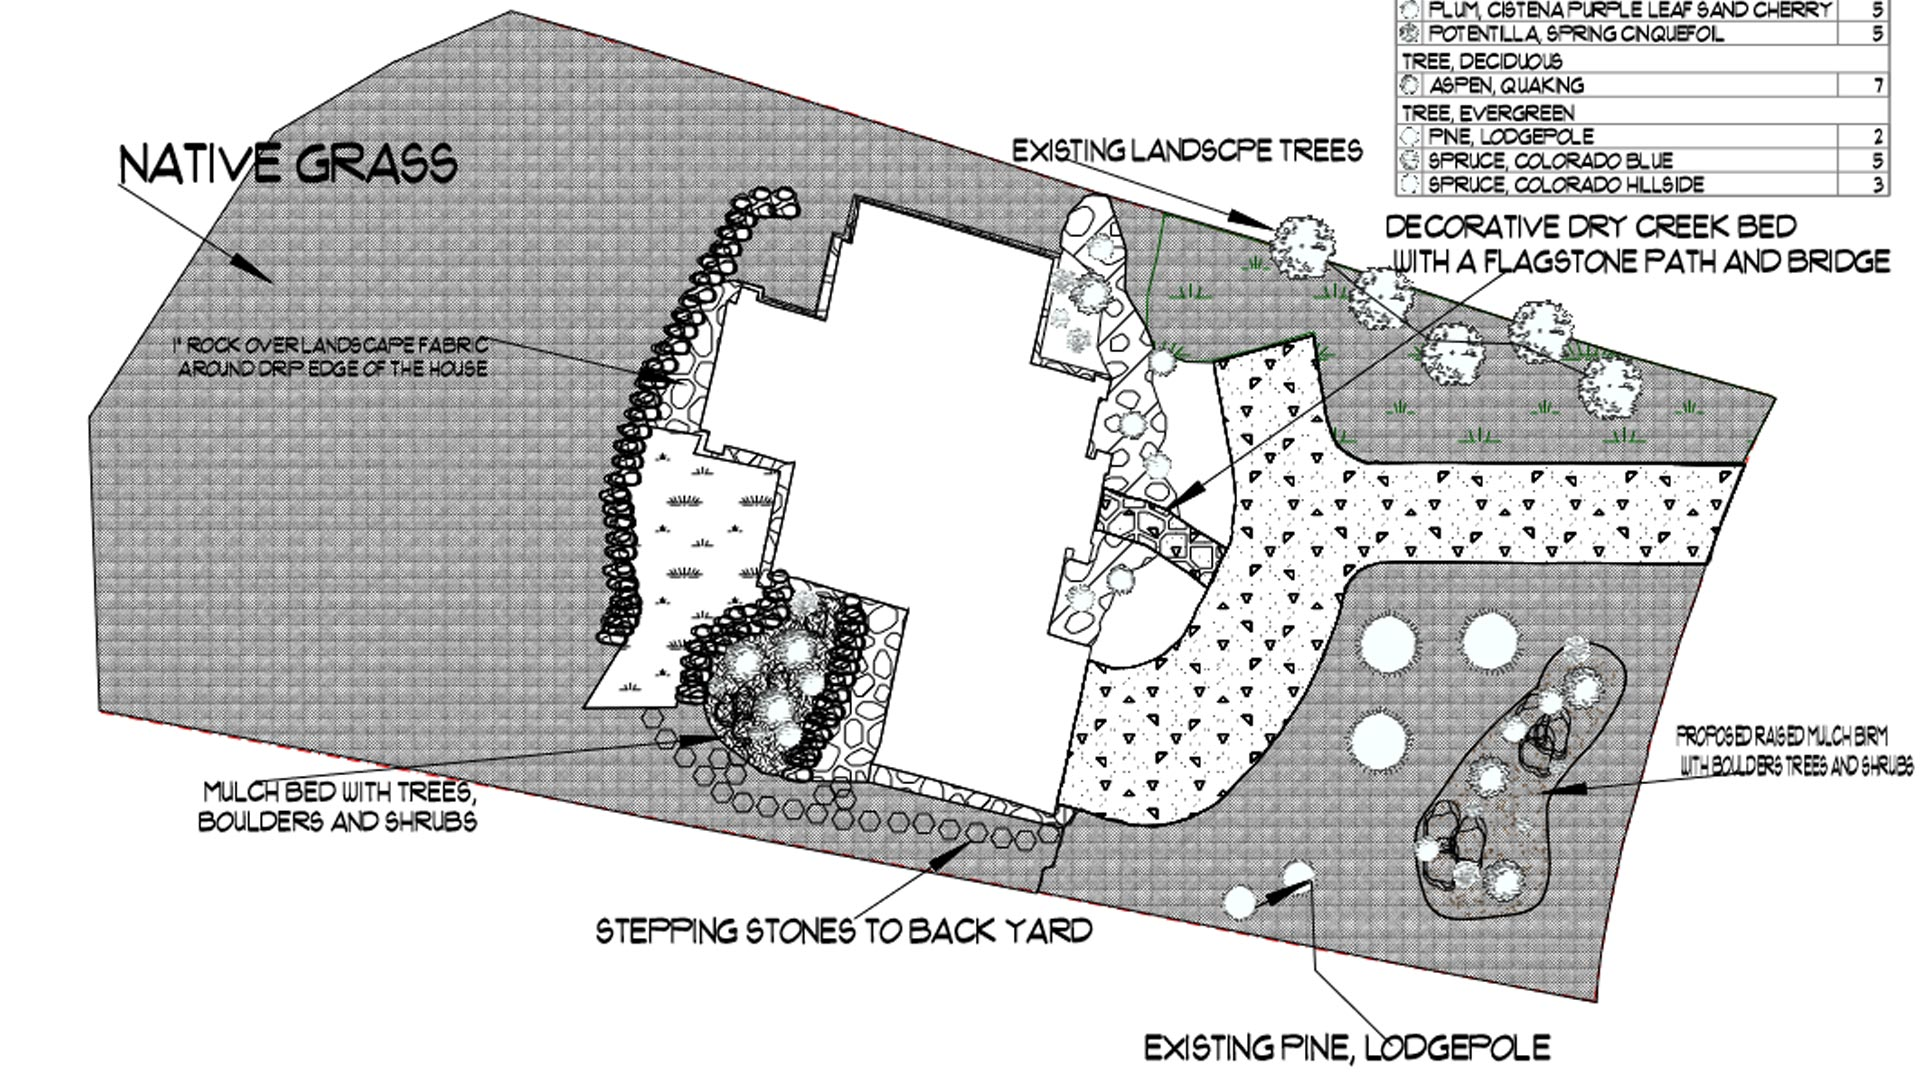 Design rendering for a new landscape project at a home in Tabernash, CO.